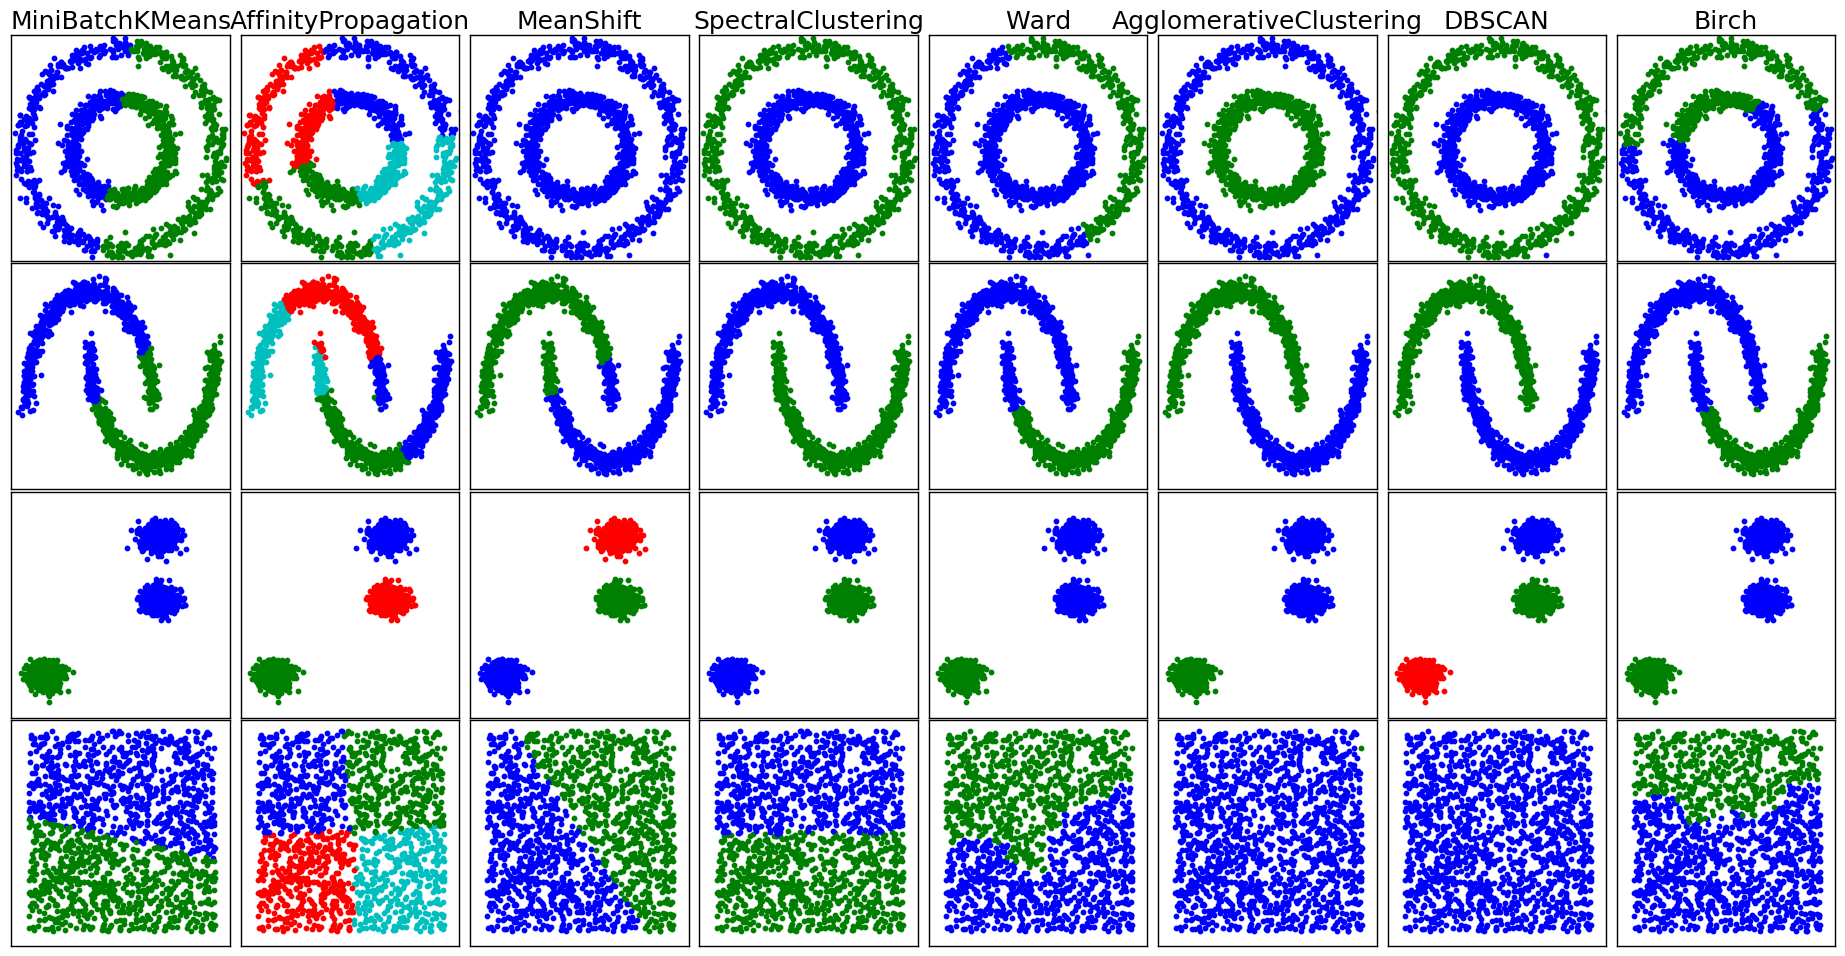 # Comparing different clustering algorithms on toy datasets